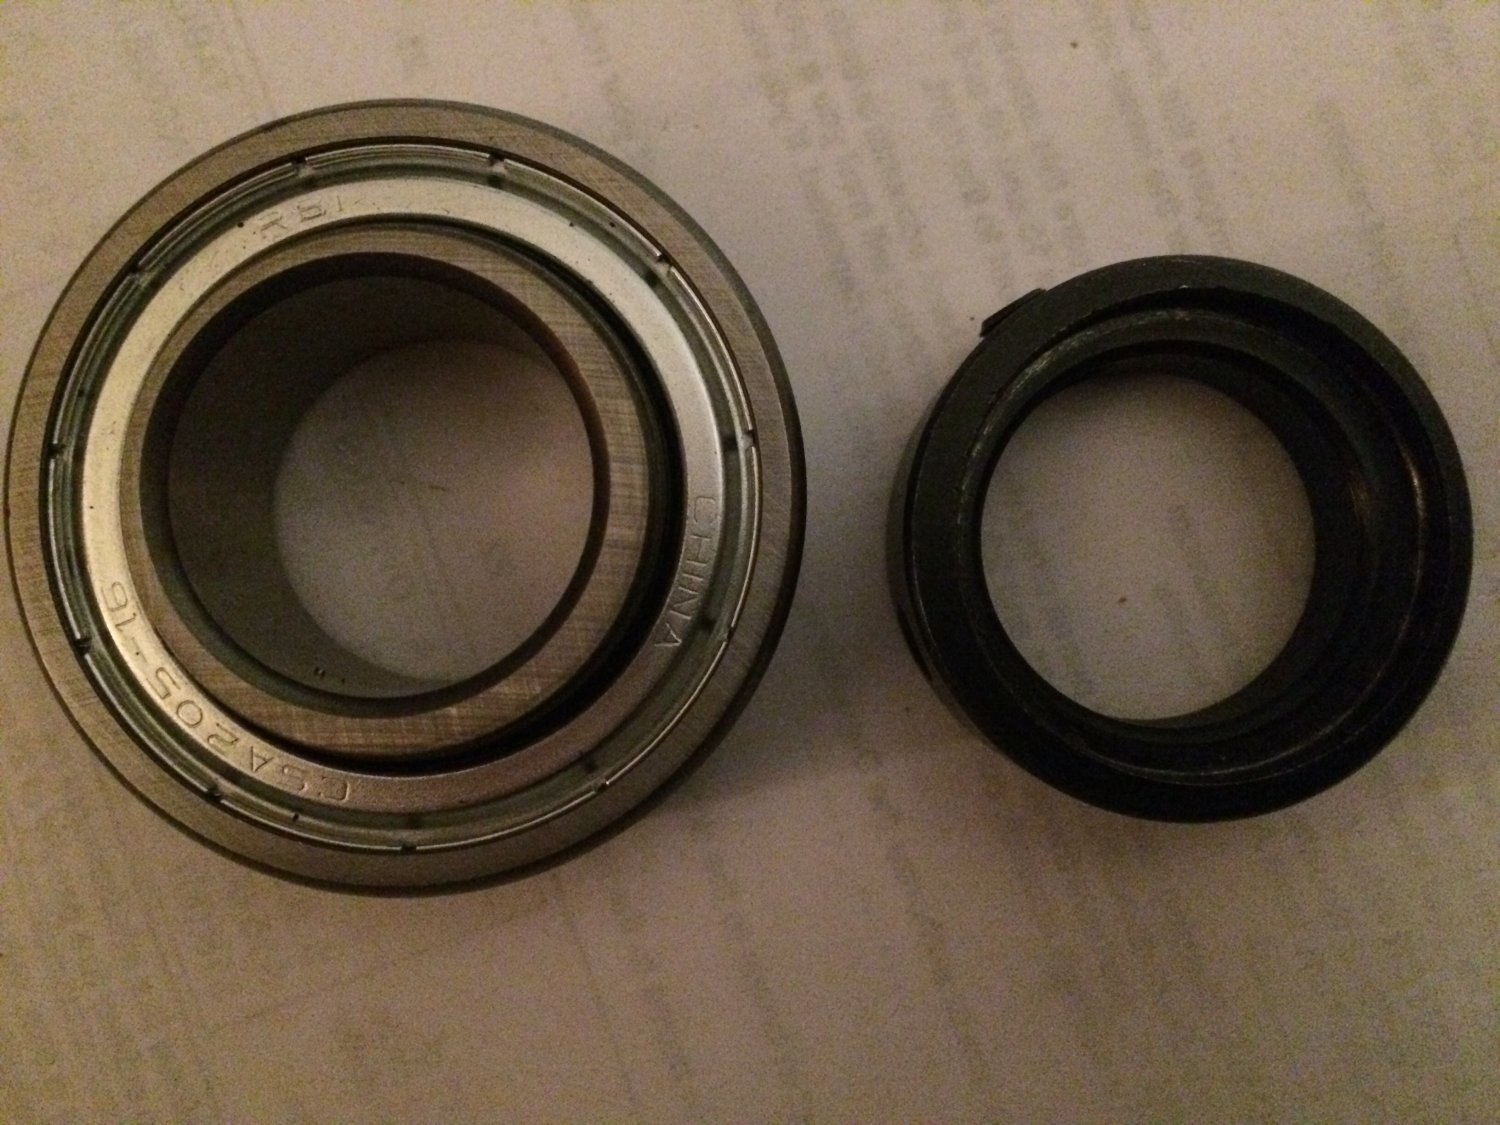 CSA205-16 Insert Bearing with Locking Collar.